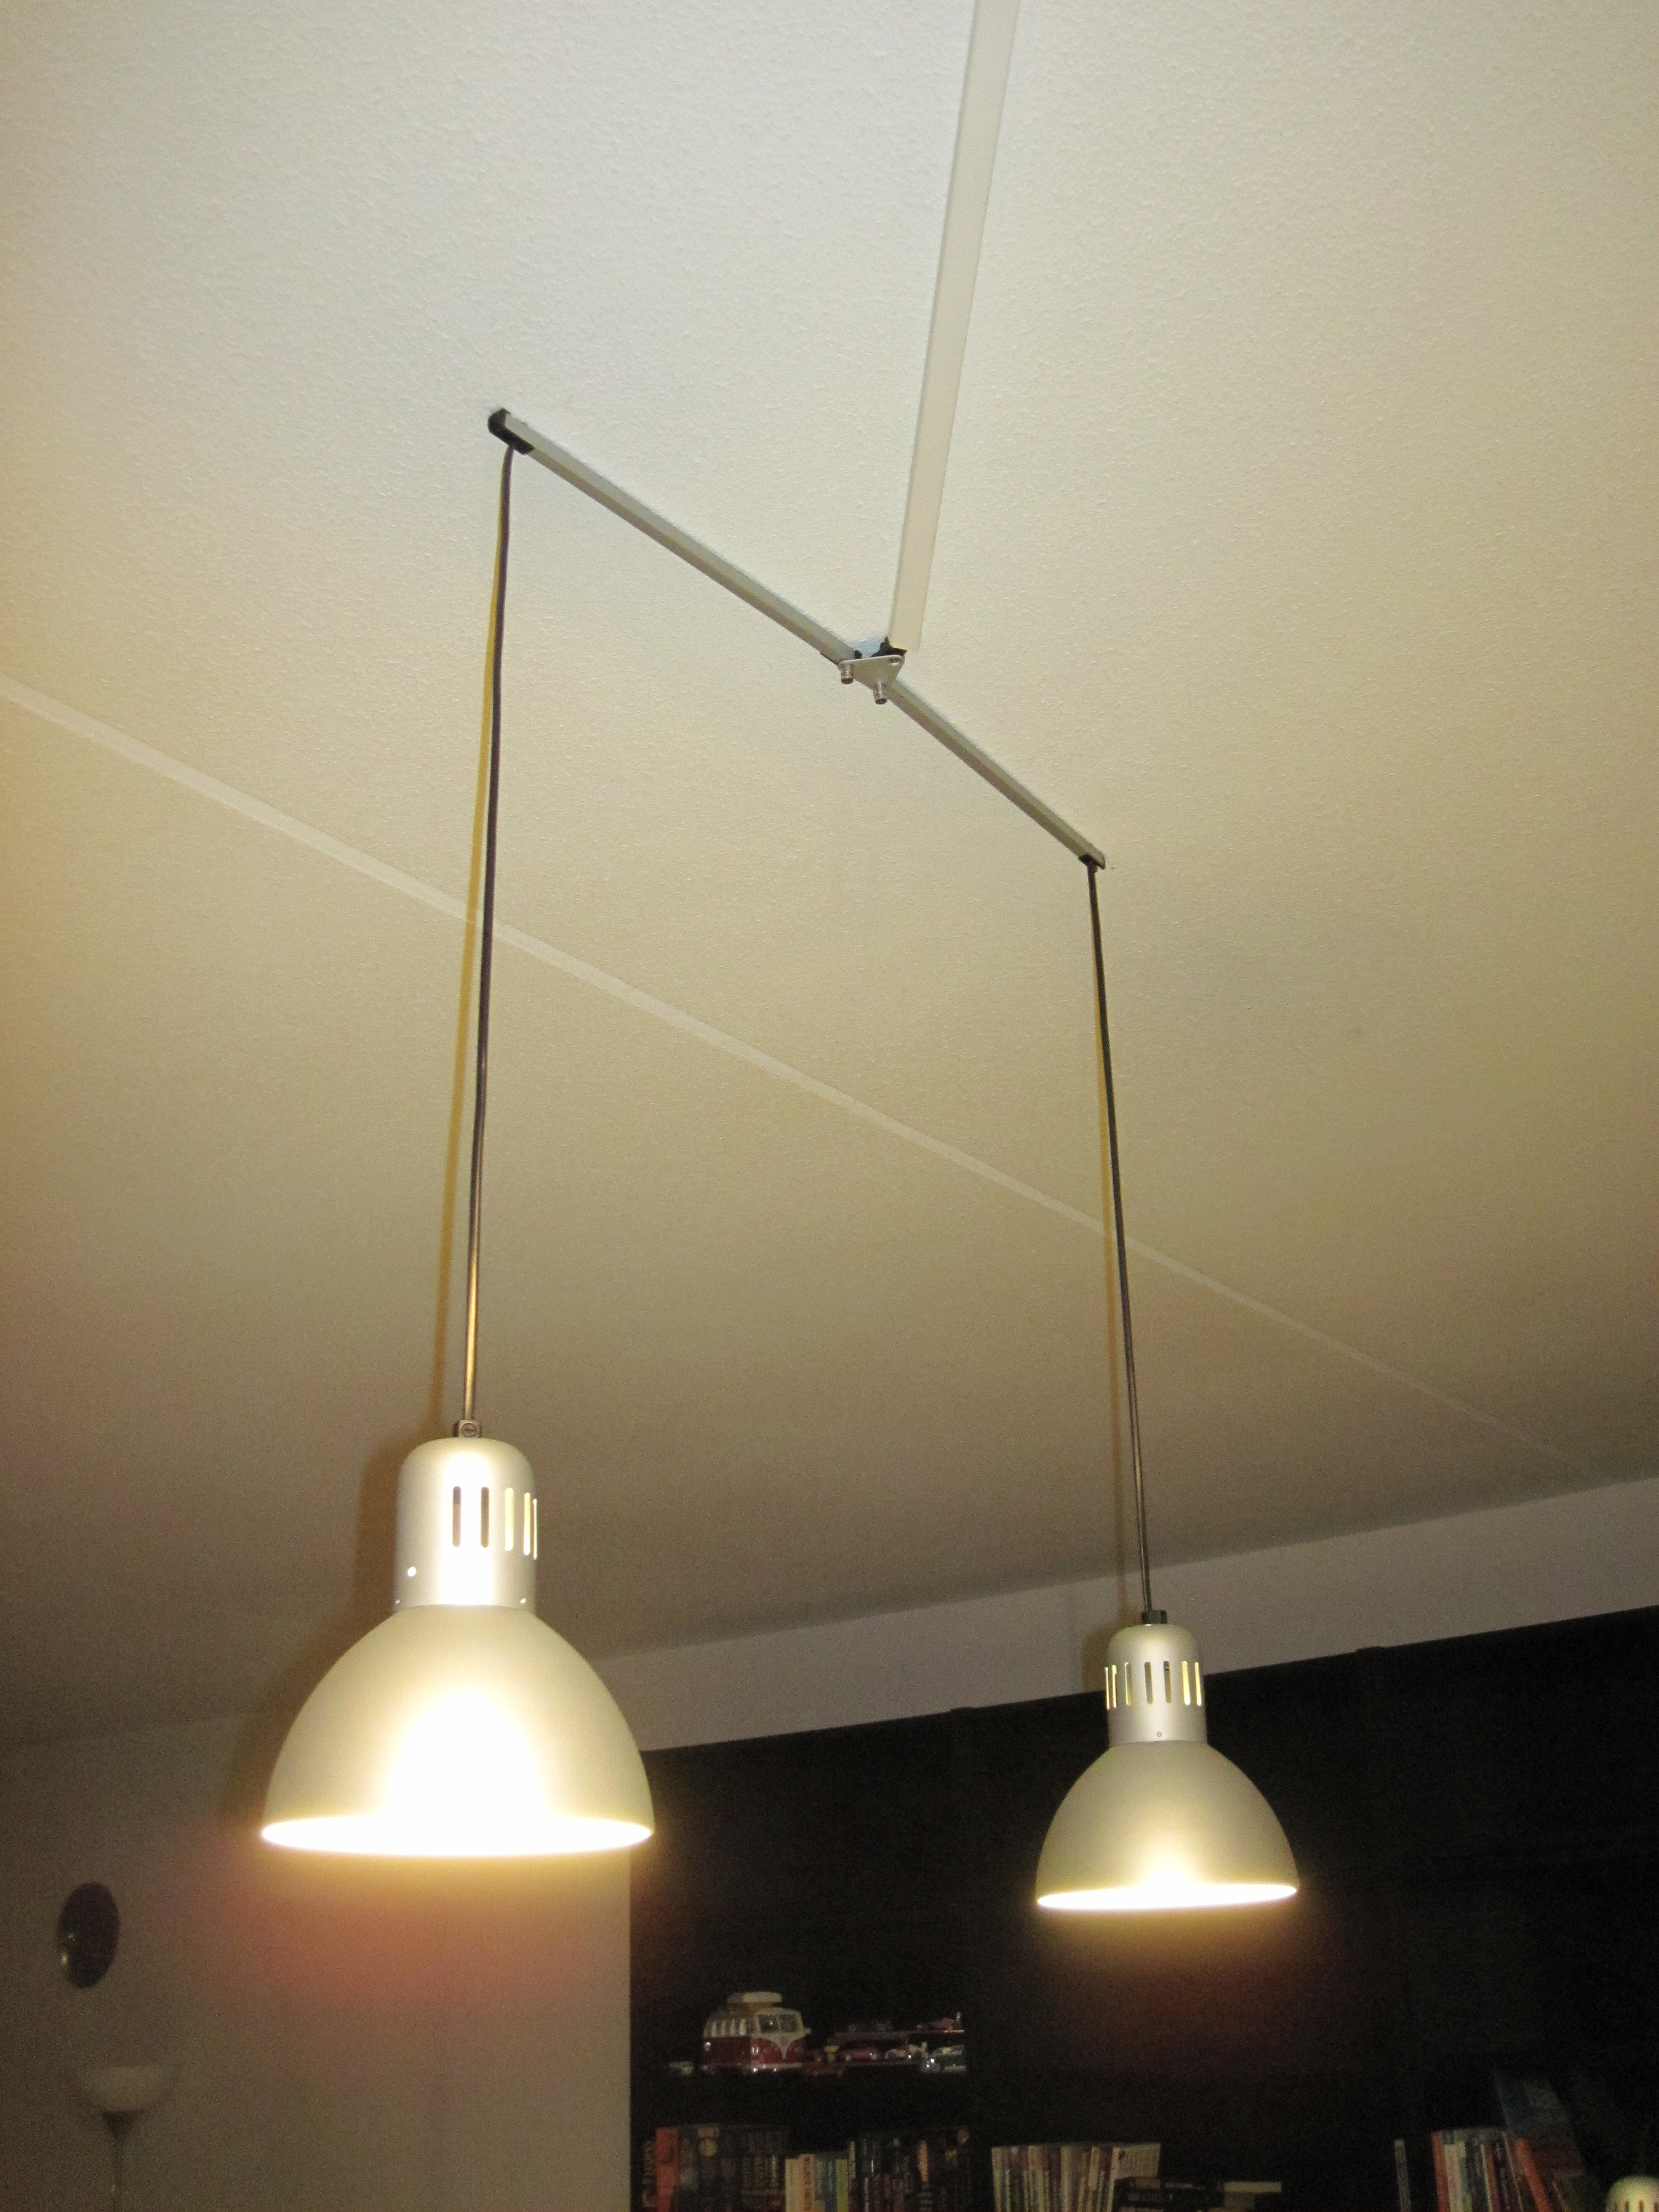 Picture of The Finished Tertial Hang Lamp